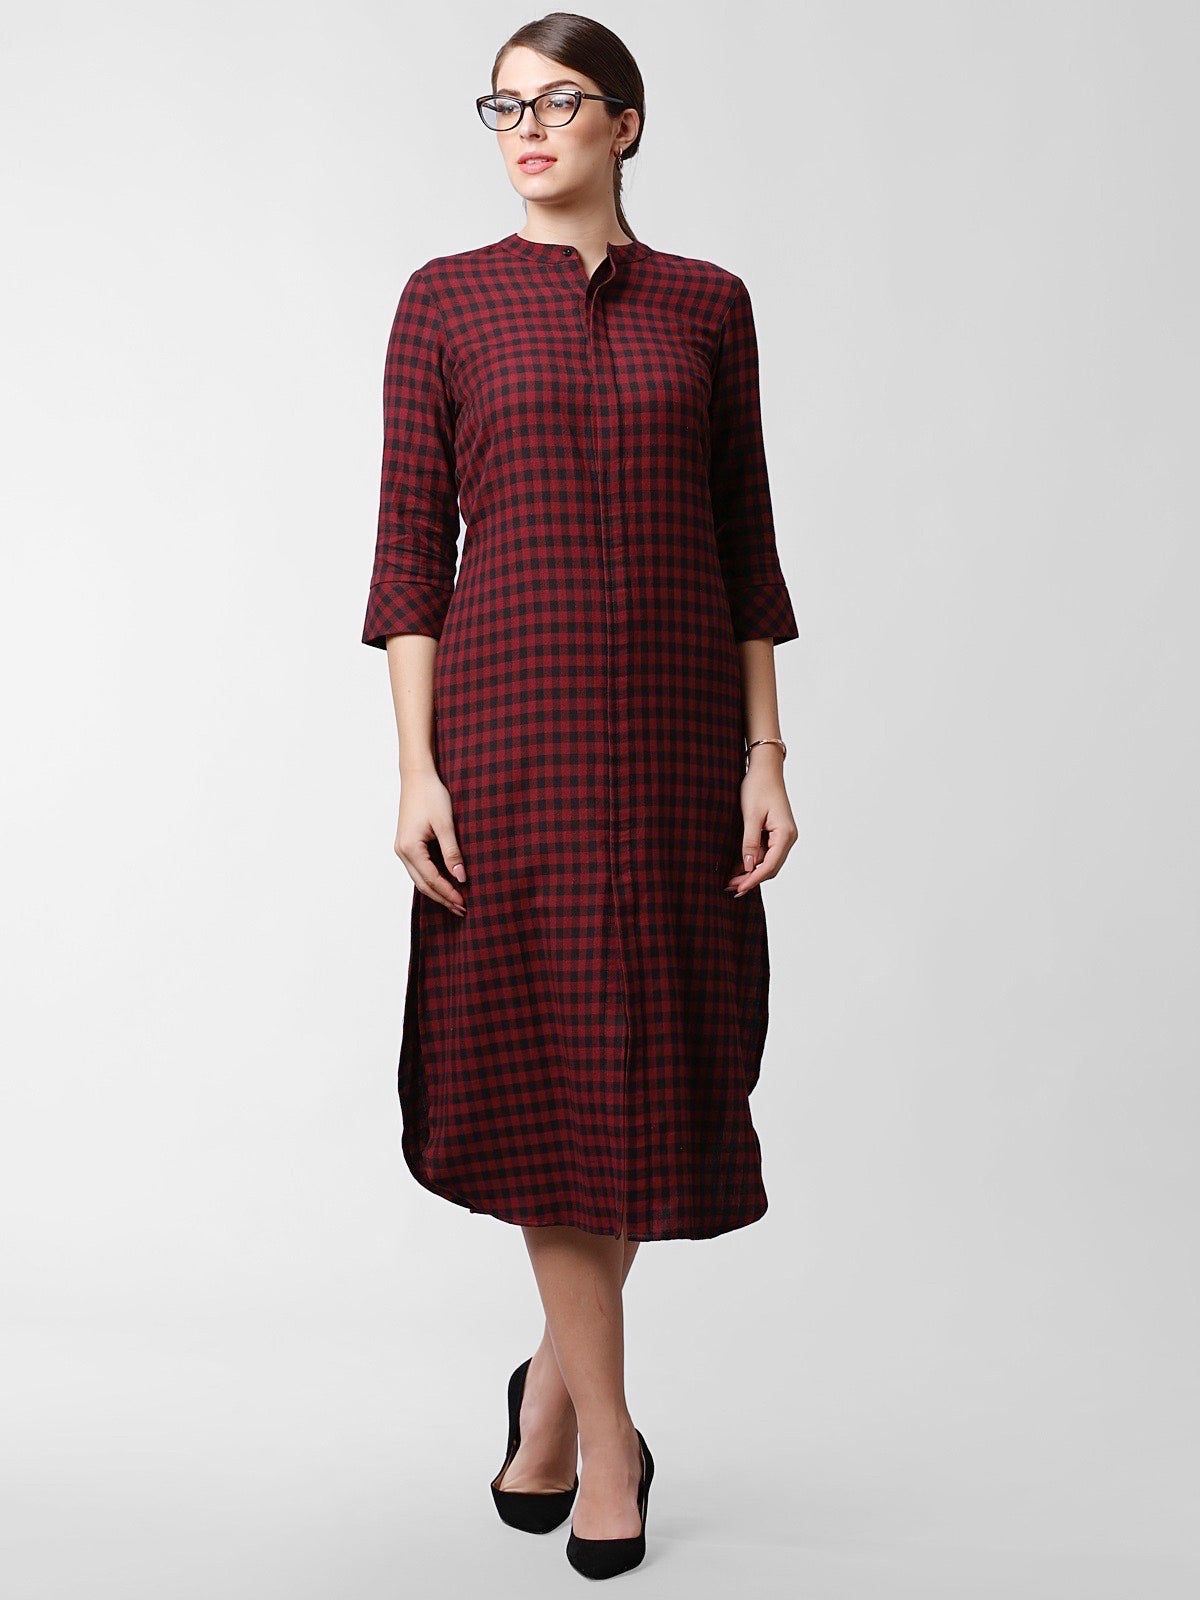 Mandarin Collar Check Shirt Dress - Pale Red & Black